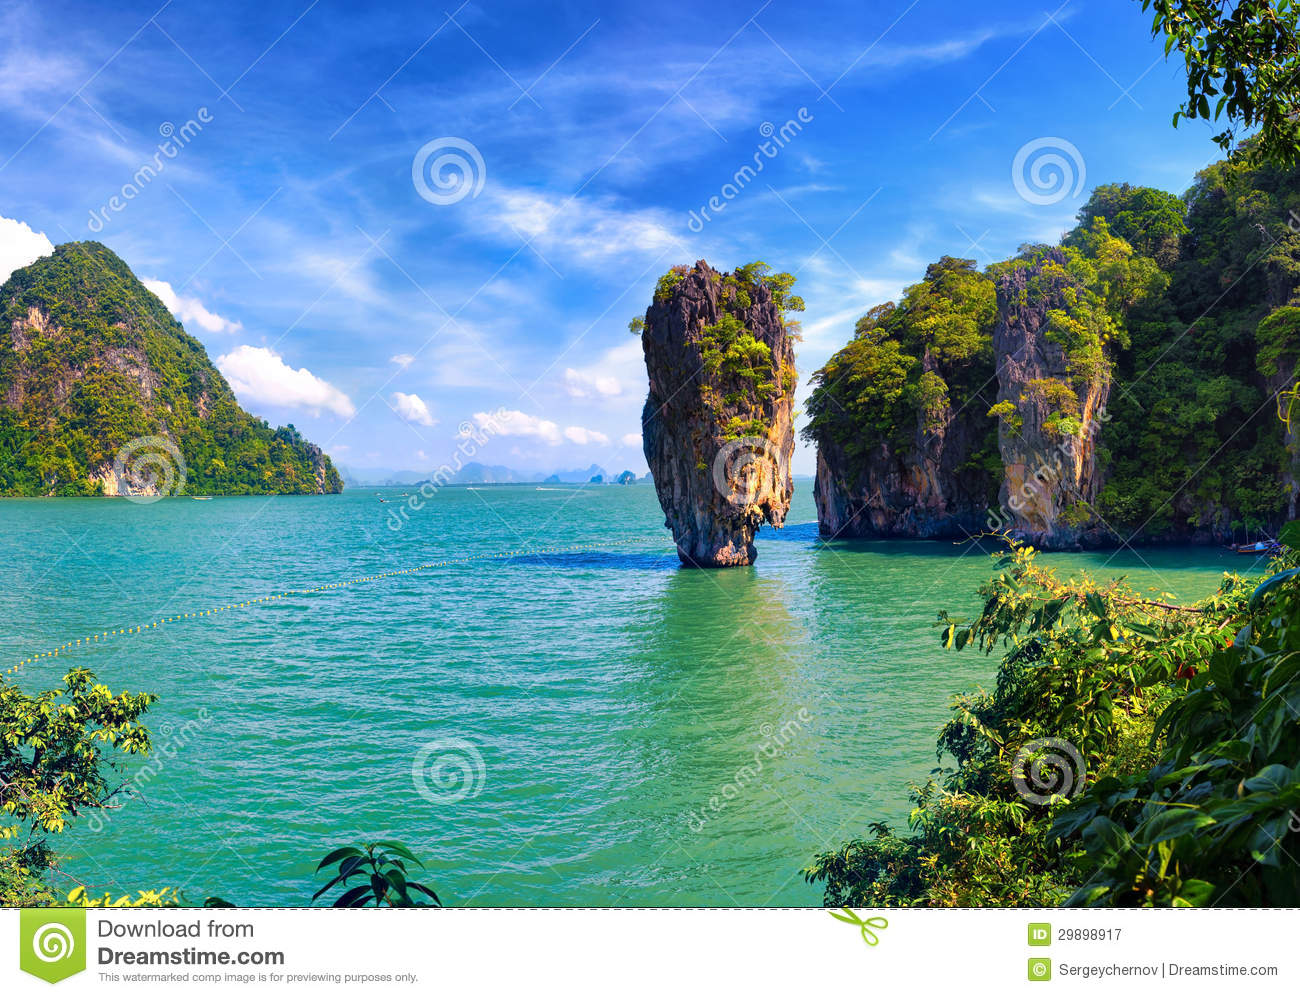 Thailand Nature Royalty Free Stock Photography